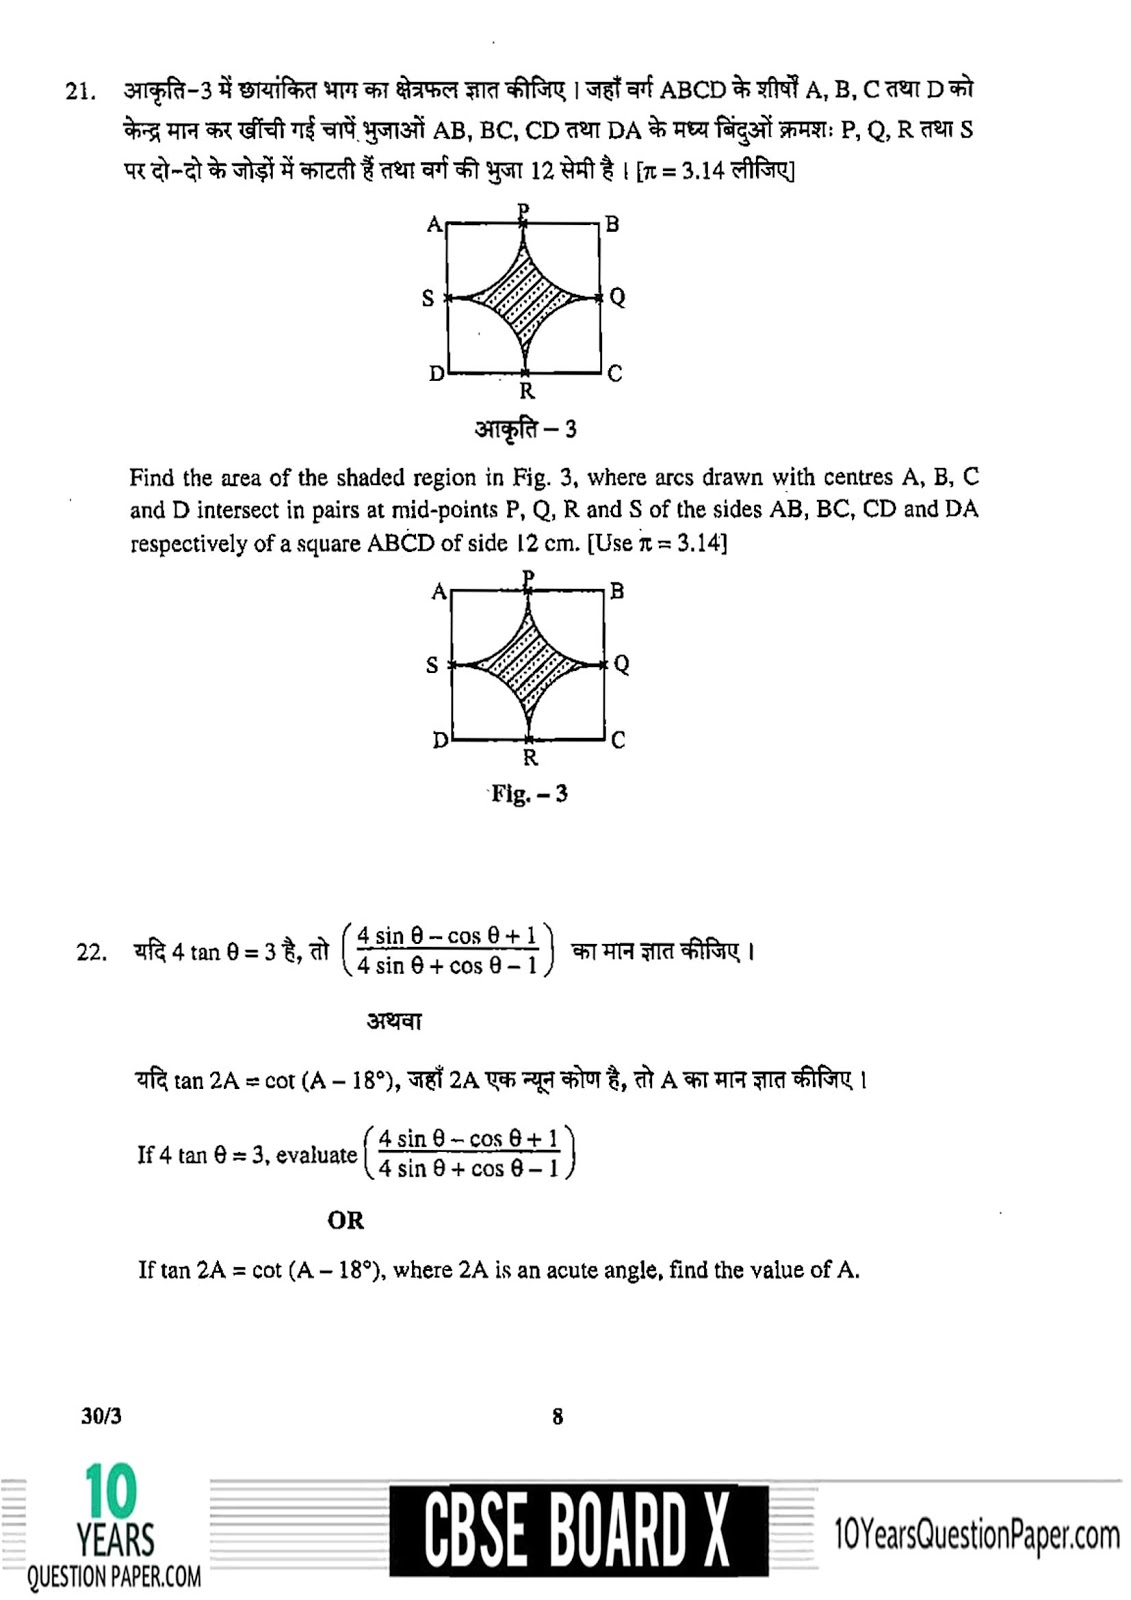 CBSE Board 2018 Maths Question paper Class 10 Page-08